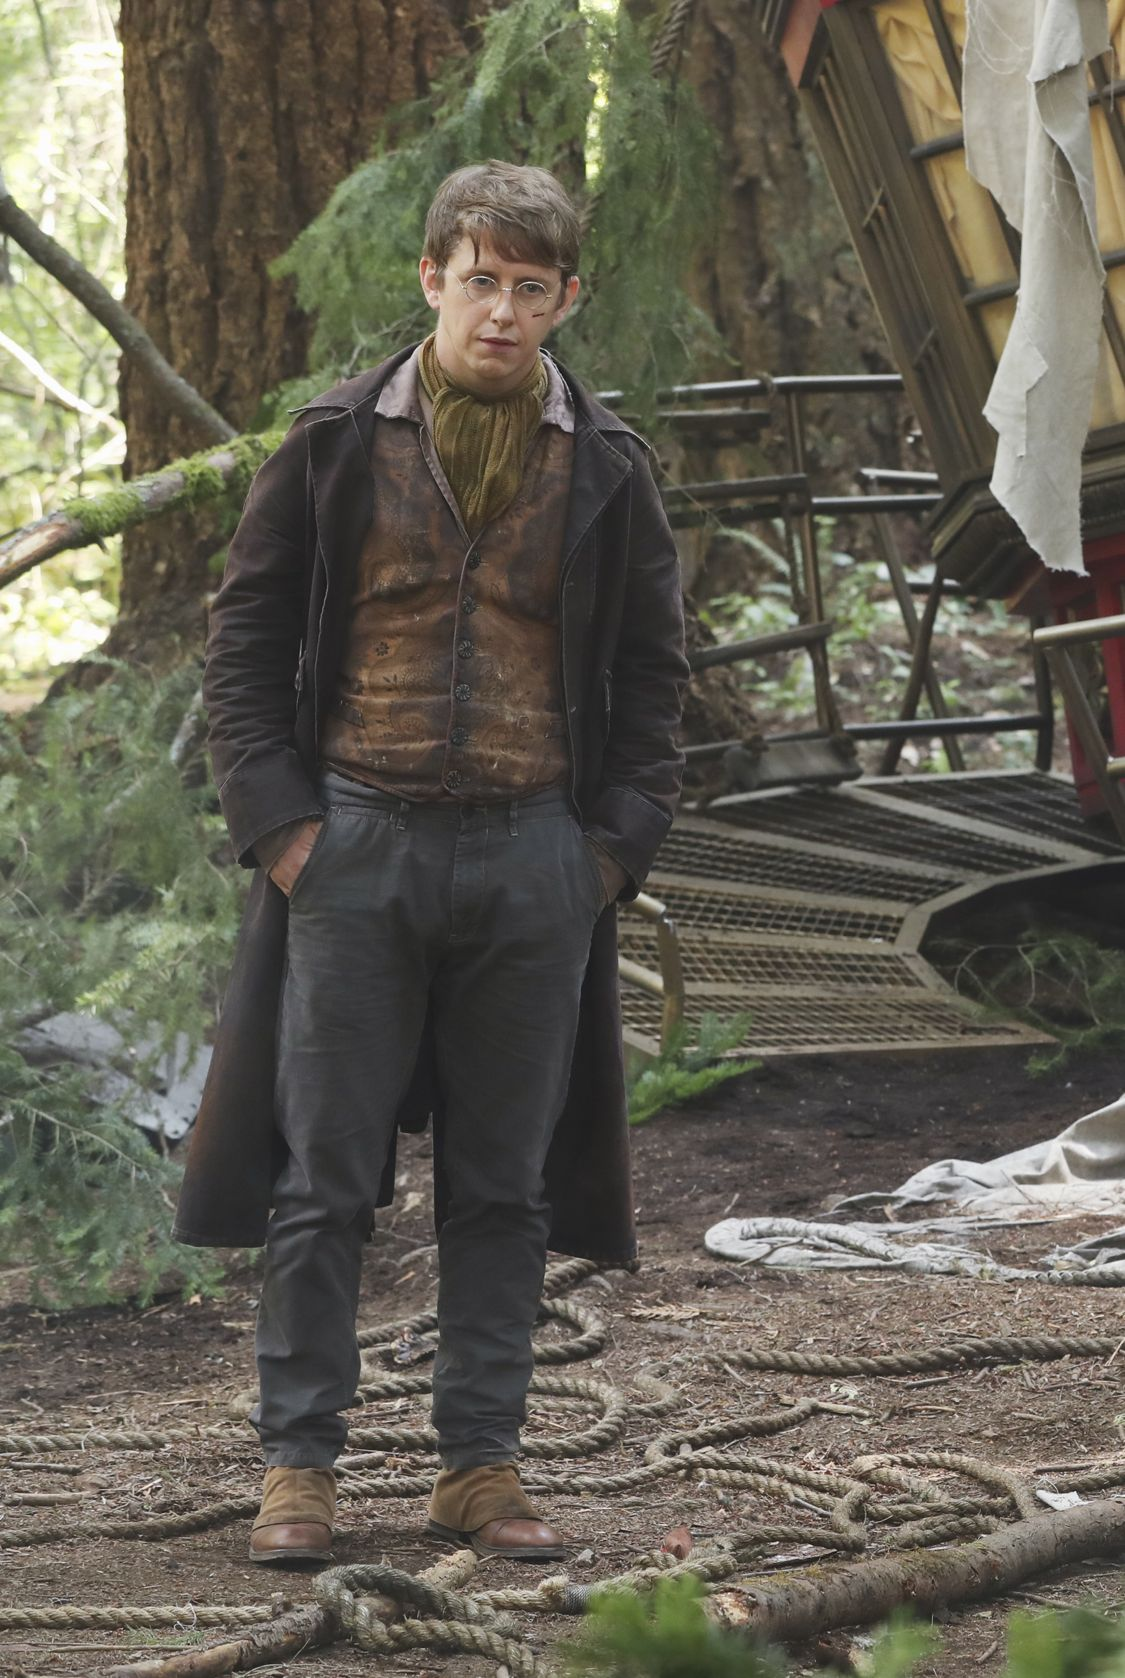 """ONCE UPON A TIME - """"The Savior"""" - As """"Once Upon a Time"""" returns to ABC for its sixth season, SUNDAY, SEPTEMBER 25 (8:00-9:00 p.m. EDT), on the ABC Television Network, so does its classic villain-the Evil Queen. (ABC/Jack Rowand) HANK HARRIS"""